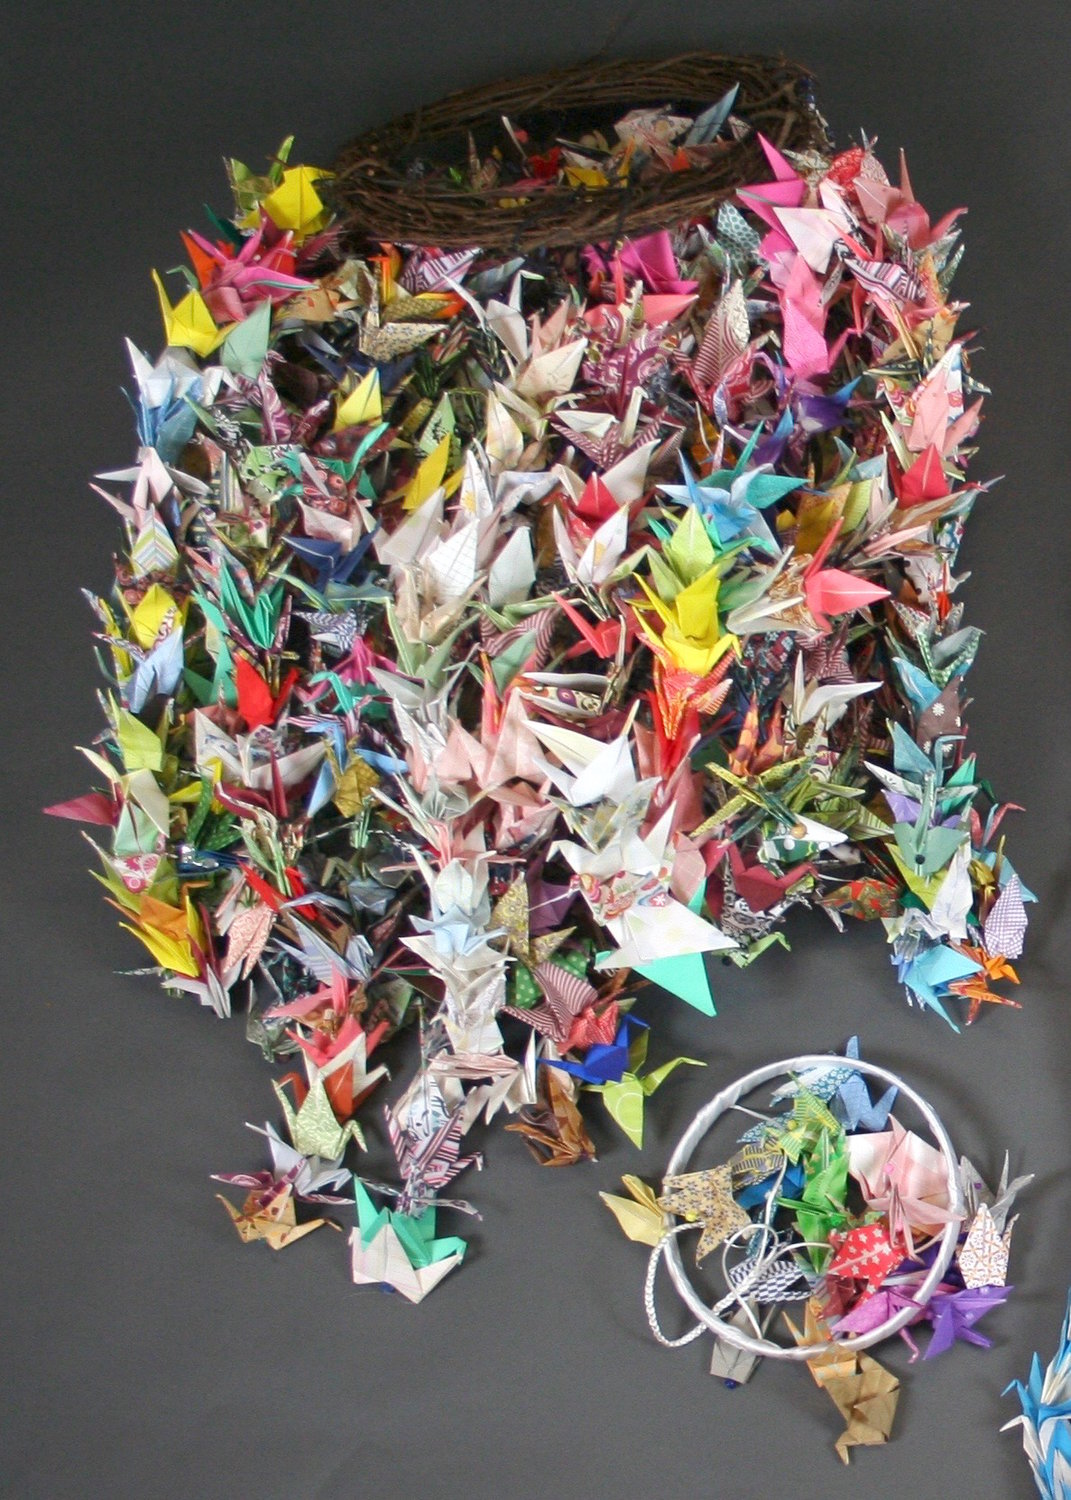 Origami cranes sent in memoriam of the Pittsburgh synagogue shooting.